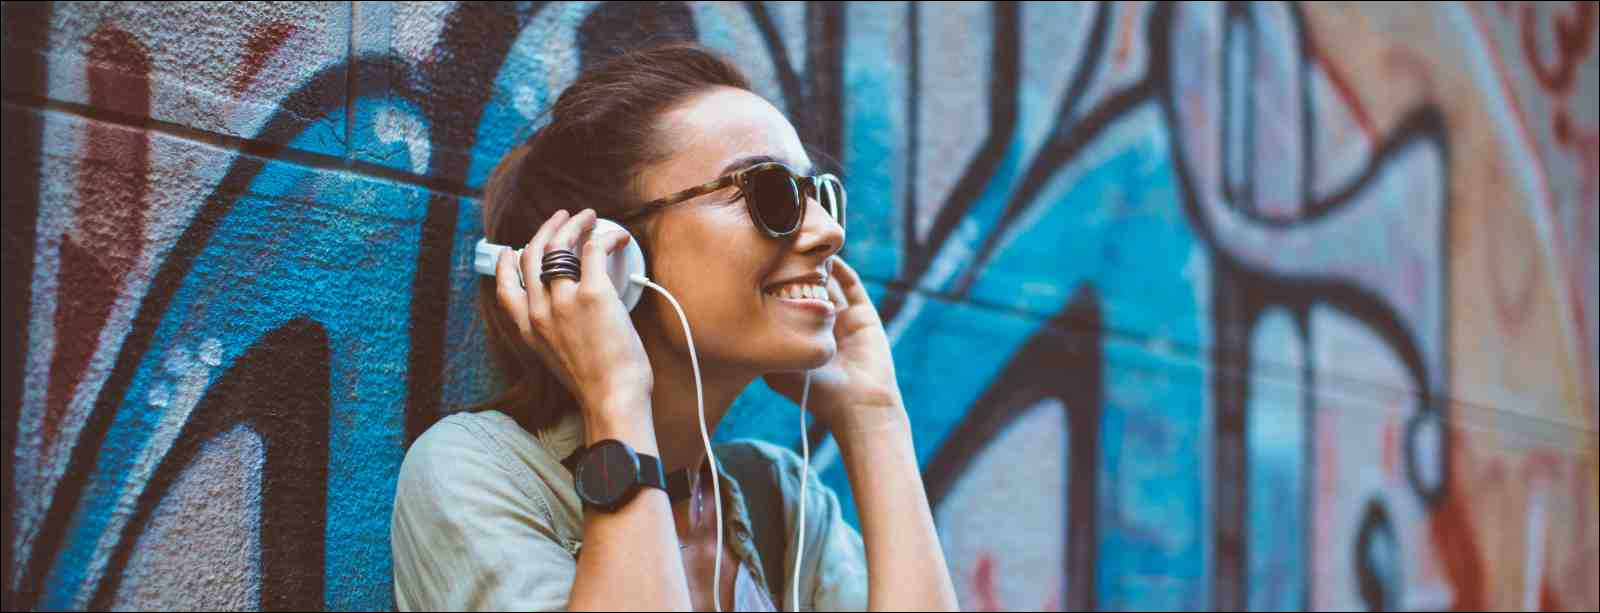 Young woman listening to podcast on headphones